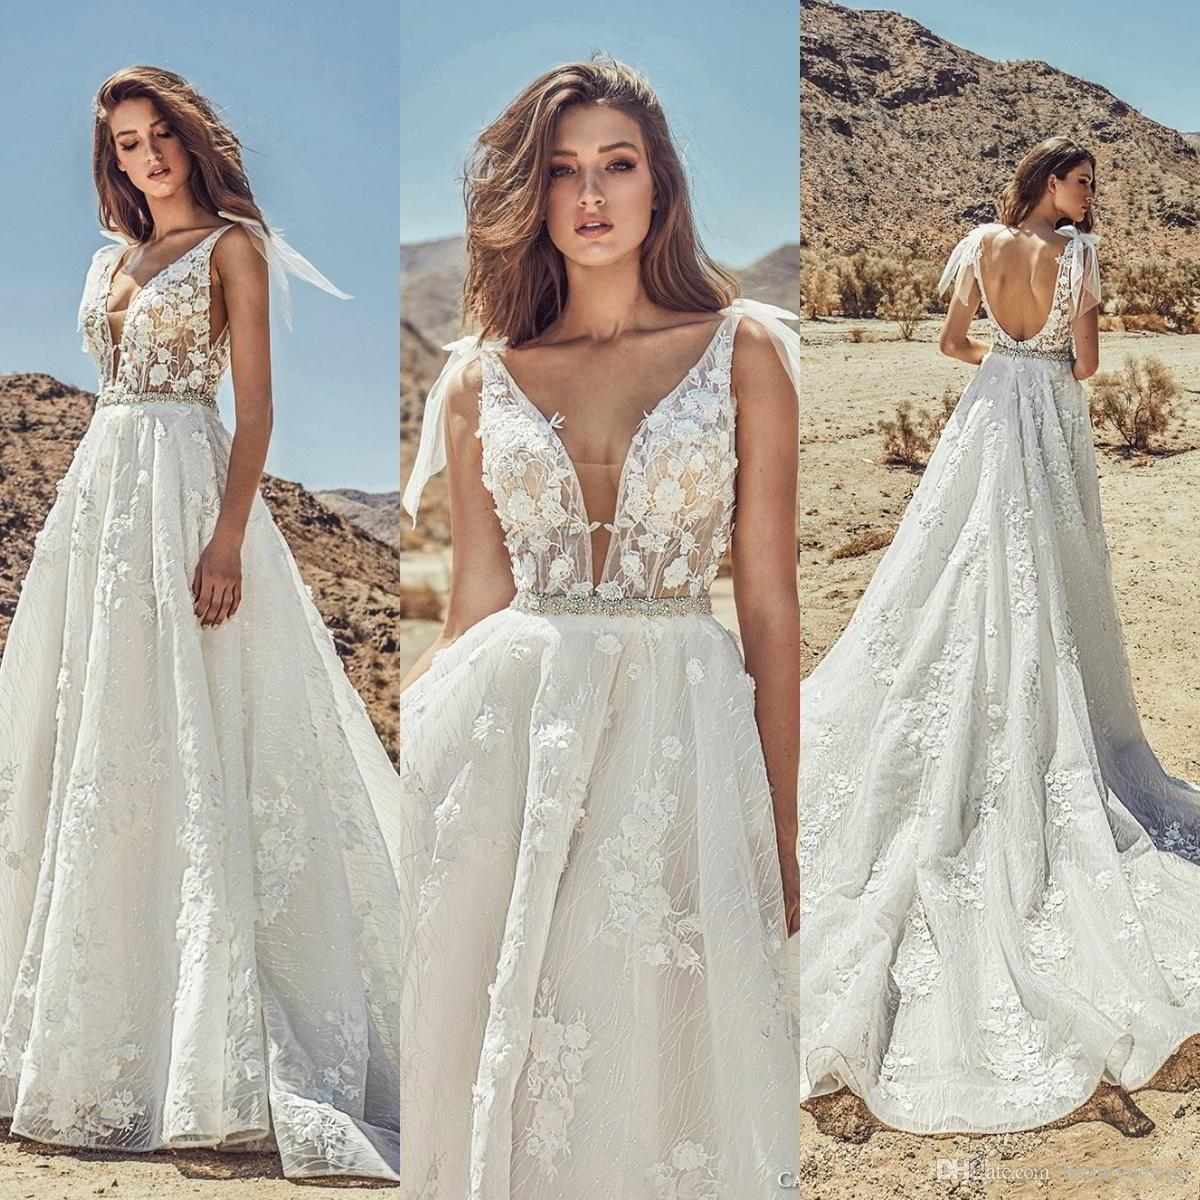 Discount Julie Vino 2019 Sexy Beach Wedding Dresses Deep V Neck Lace Beads  Backless A Line Bridal Gowns Plus Size Bohemian Robe De Mariée Bridal  Collection ... 3688b96b3ac0